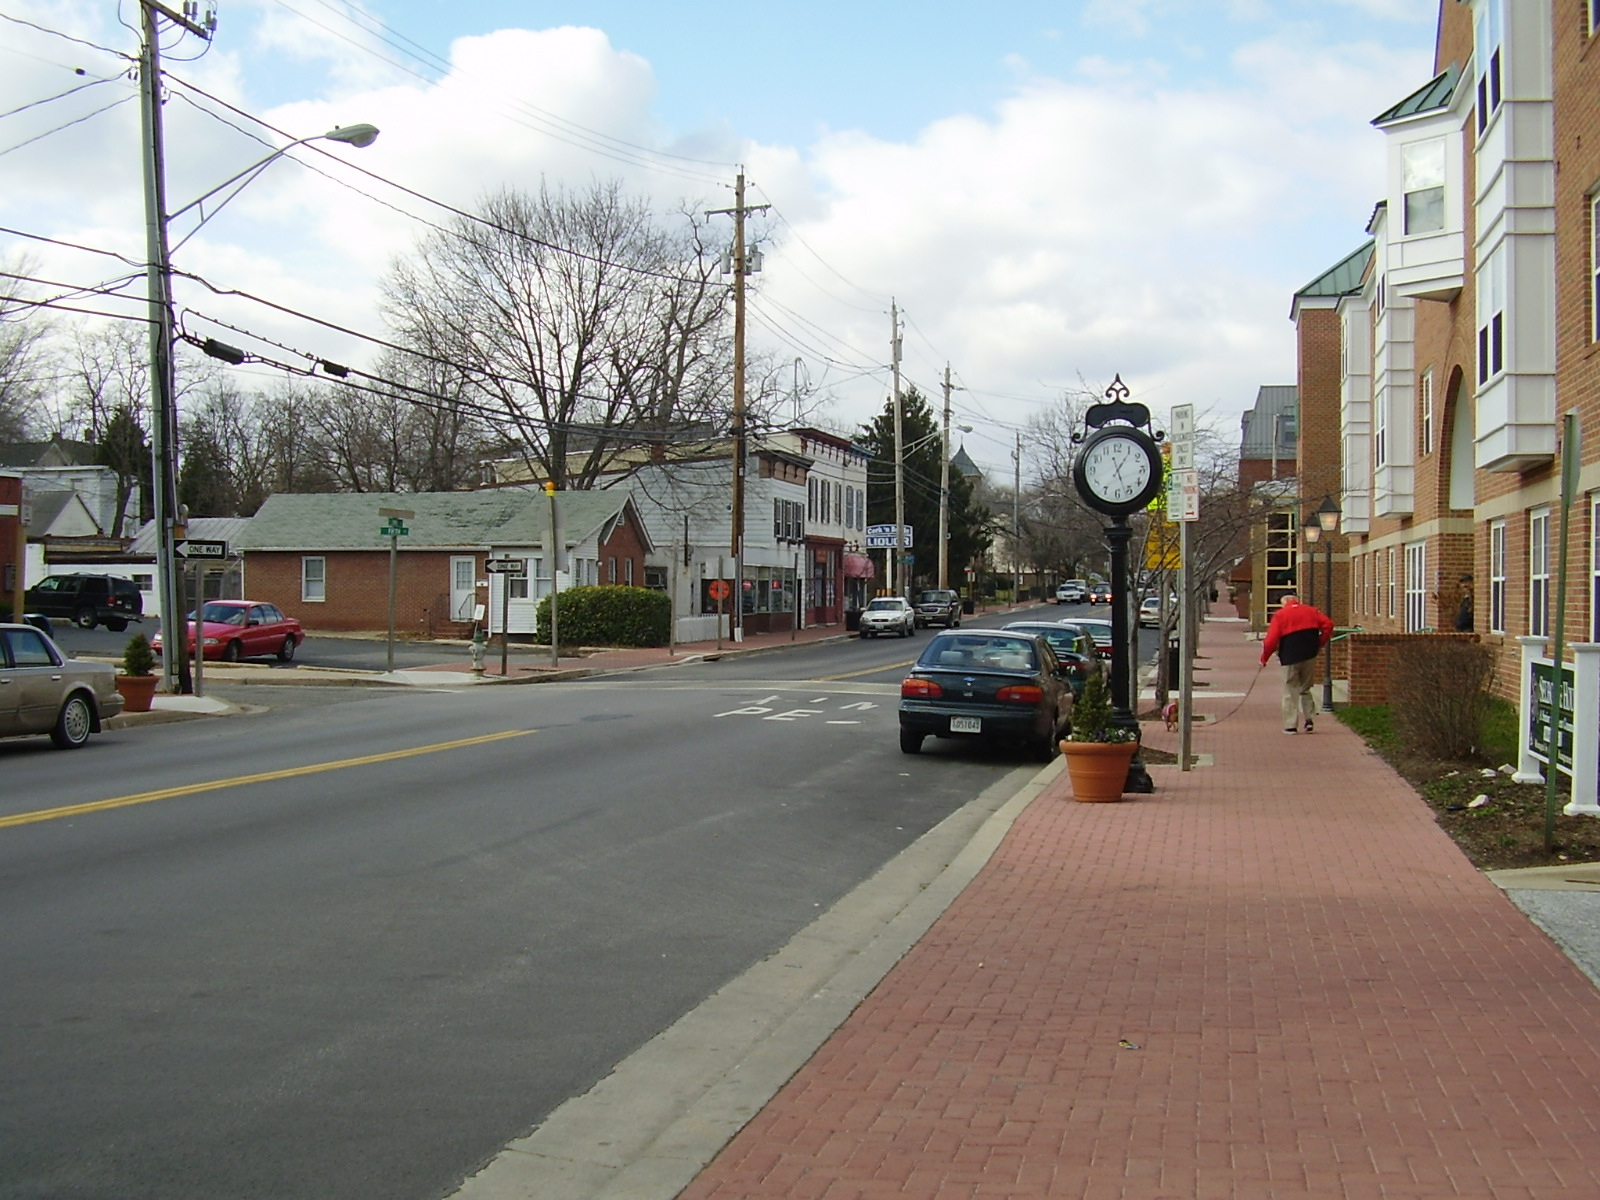 Global perspectives the changing face of neighborhood crime for Route 1 motors inc laurel md